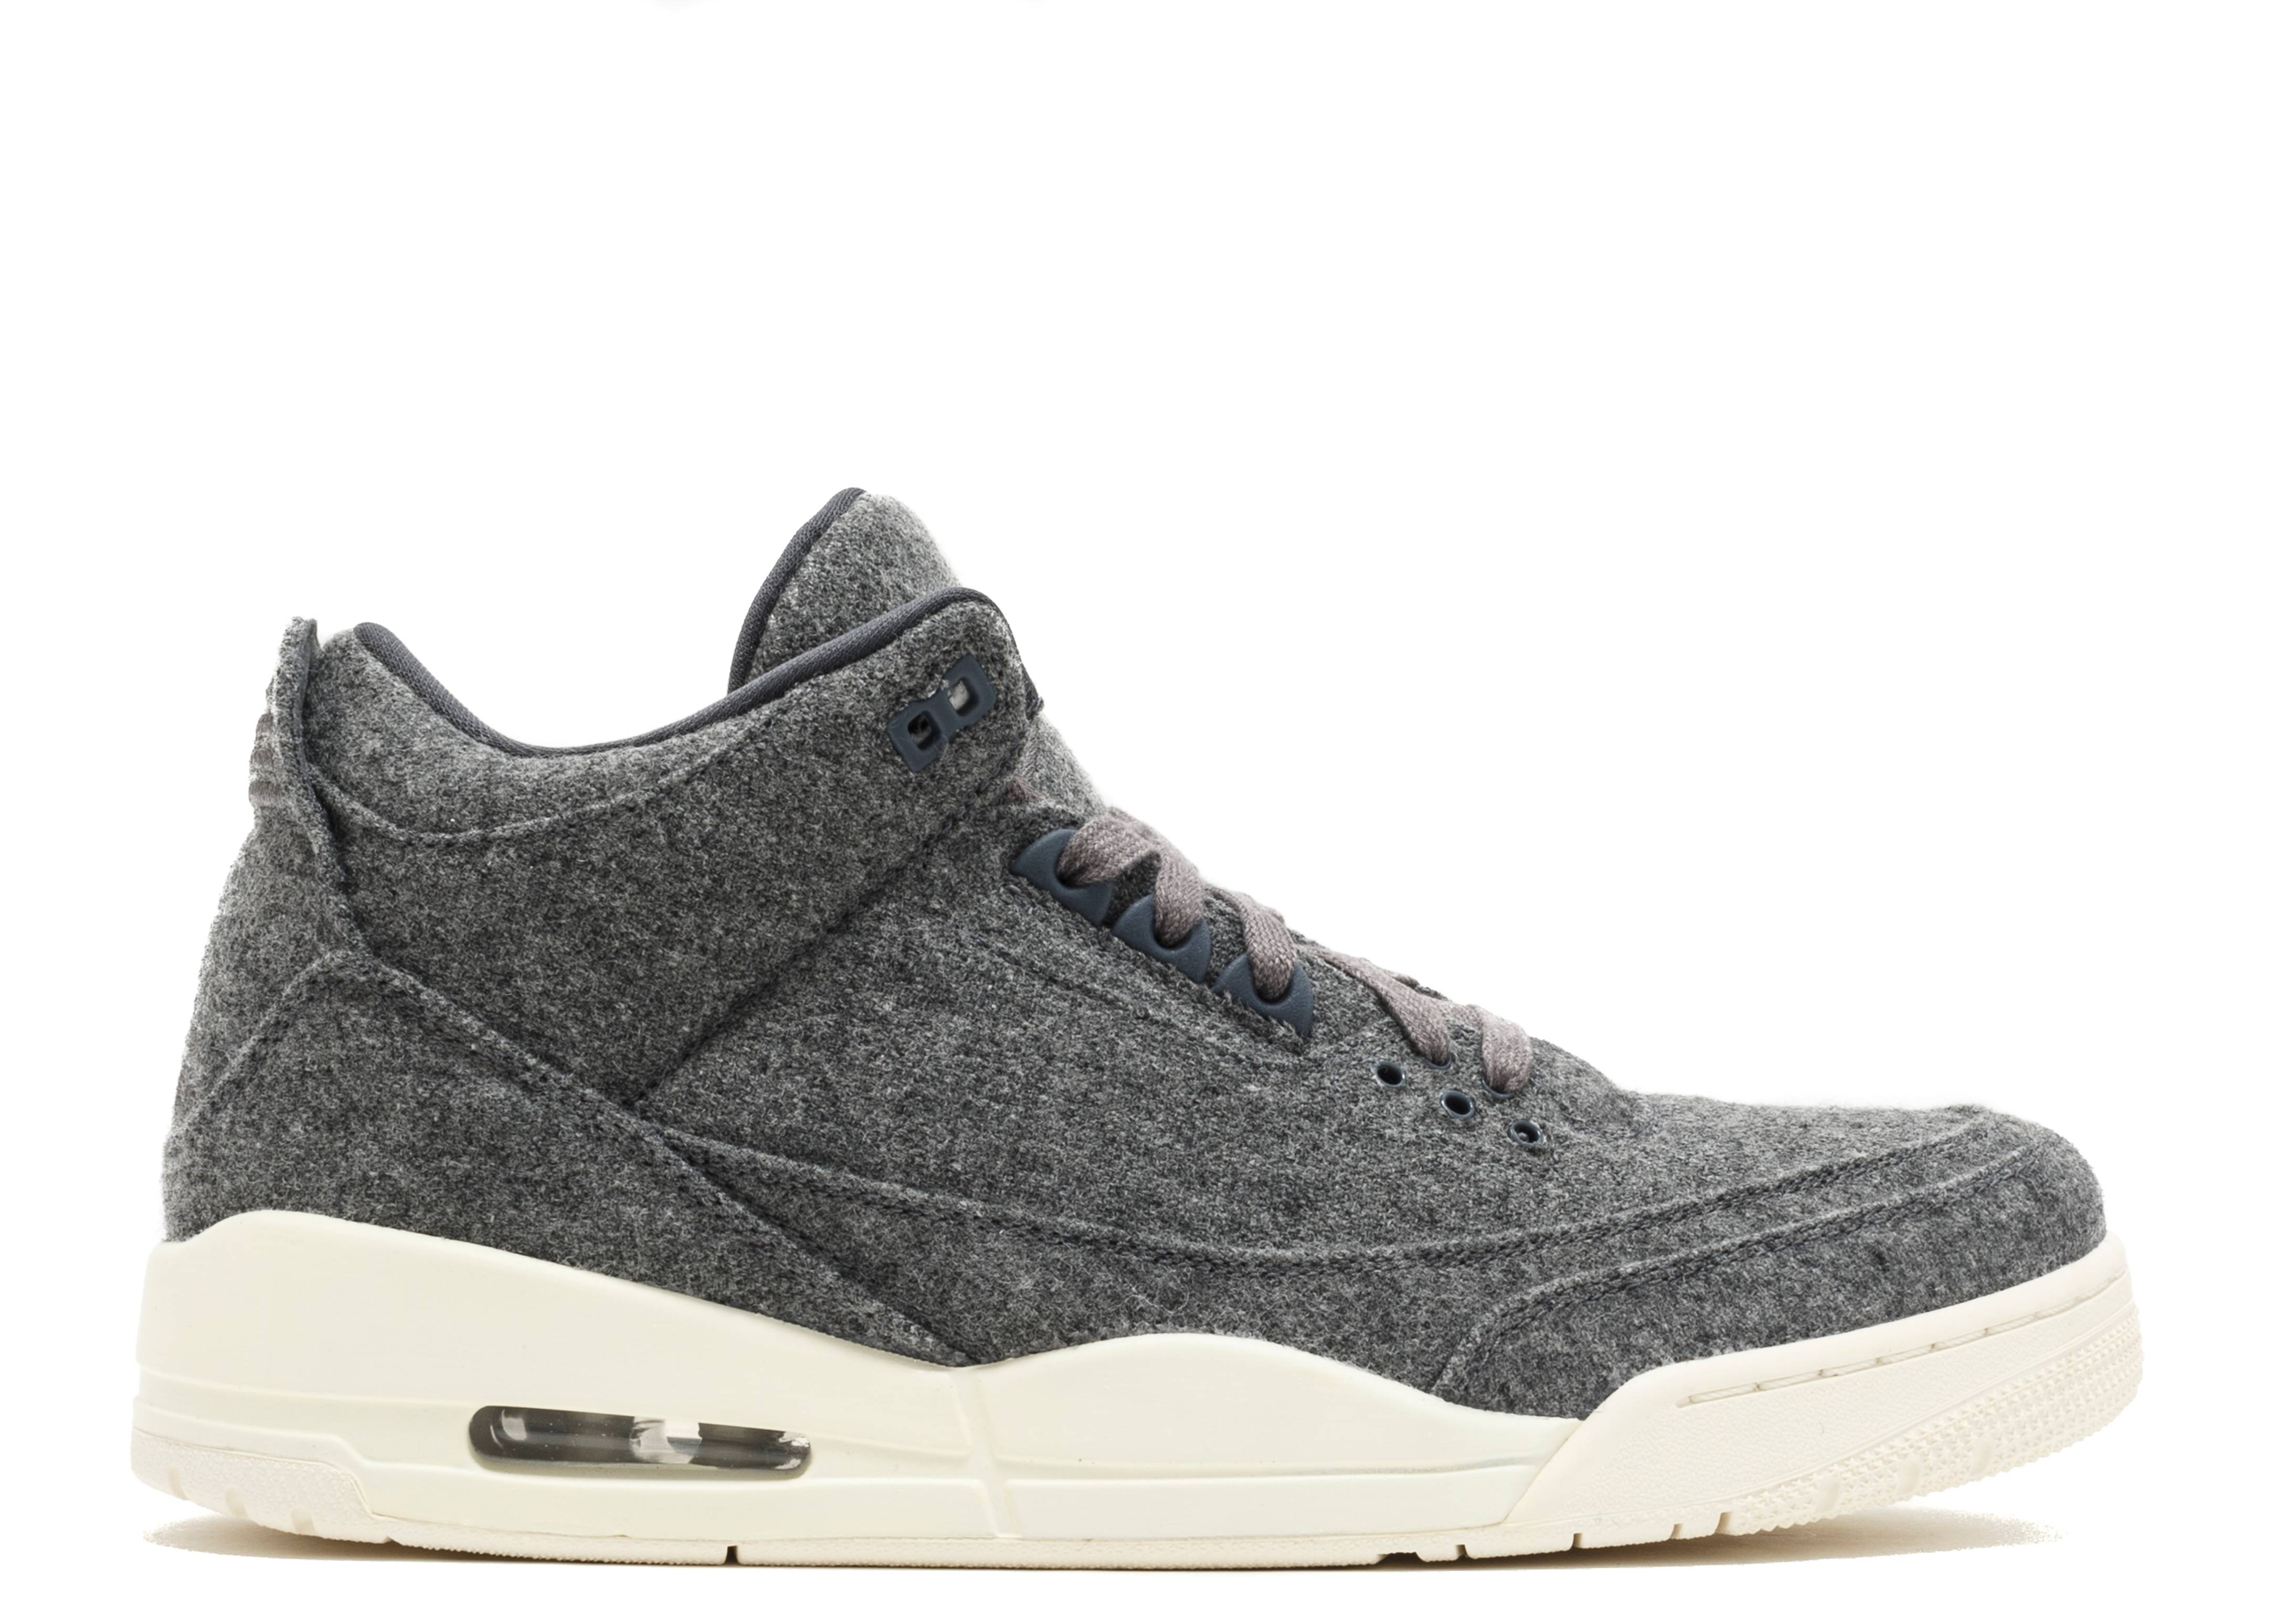 low priced 0886f c7125 Air Jordan 3 (III) Shoes - Nike | Flight Club